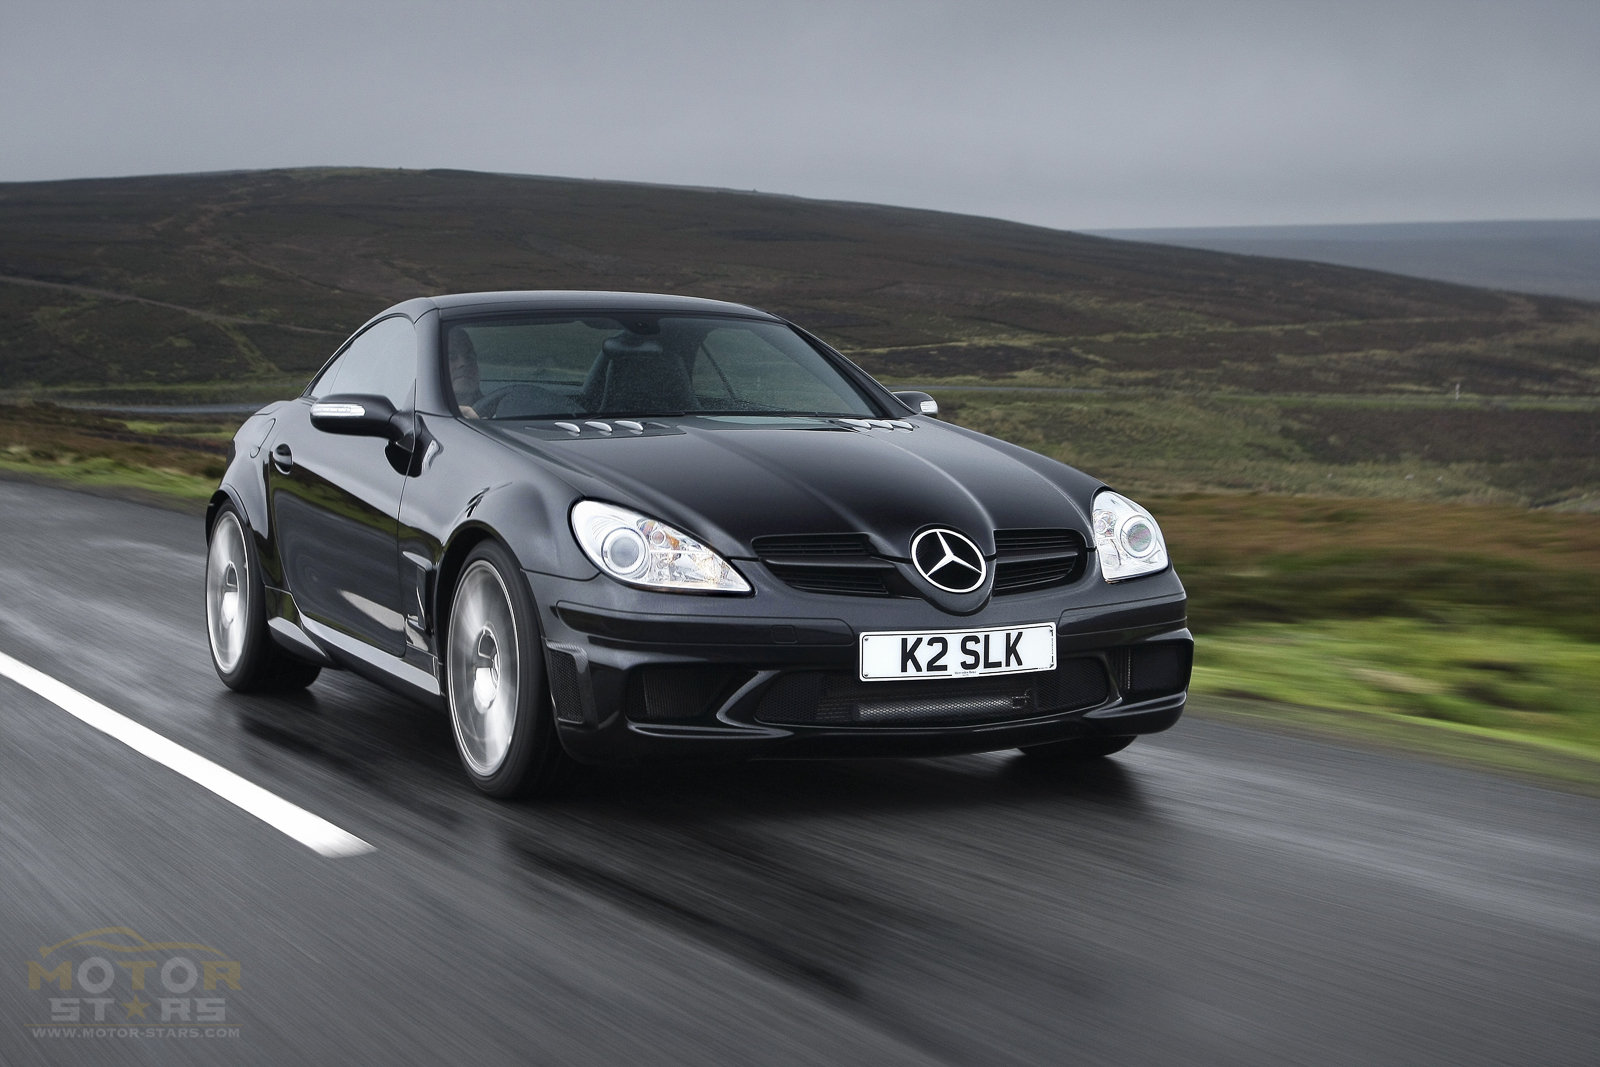 mercedes benz slk 55 amg buyers guide motorstars. Black Bedroom Furniture Sets. Home Design Ideas